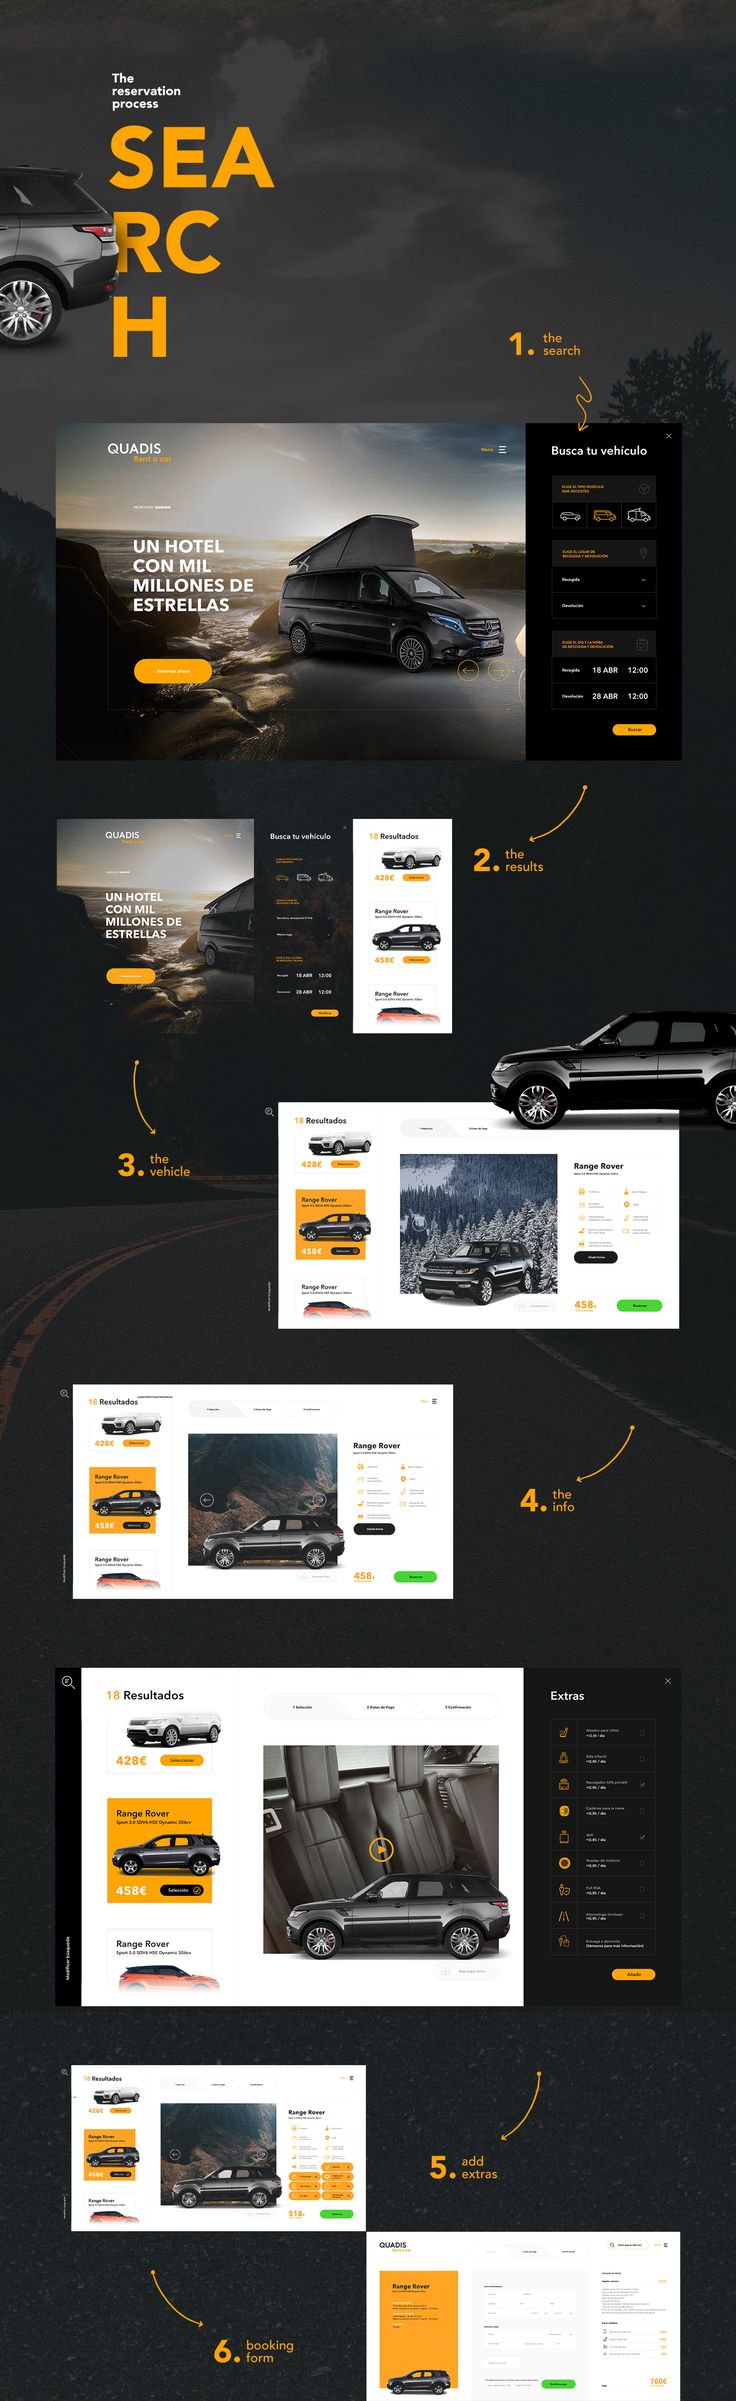 Quadis is a car renting service characterized by its high-end vehicles. The demographic target allowed us to make an elegant and modern design, far from its competitors. Its principal value was to develop a new and more intuitive search method thanks to a…